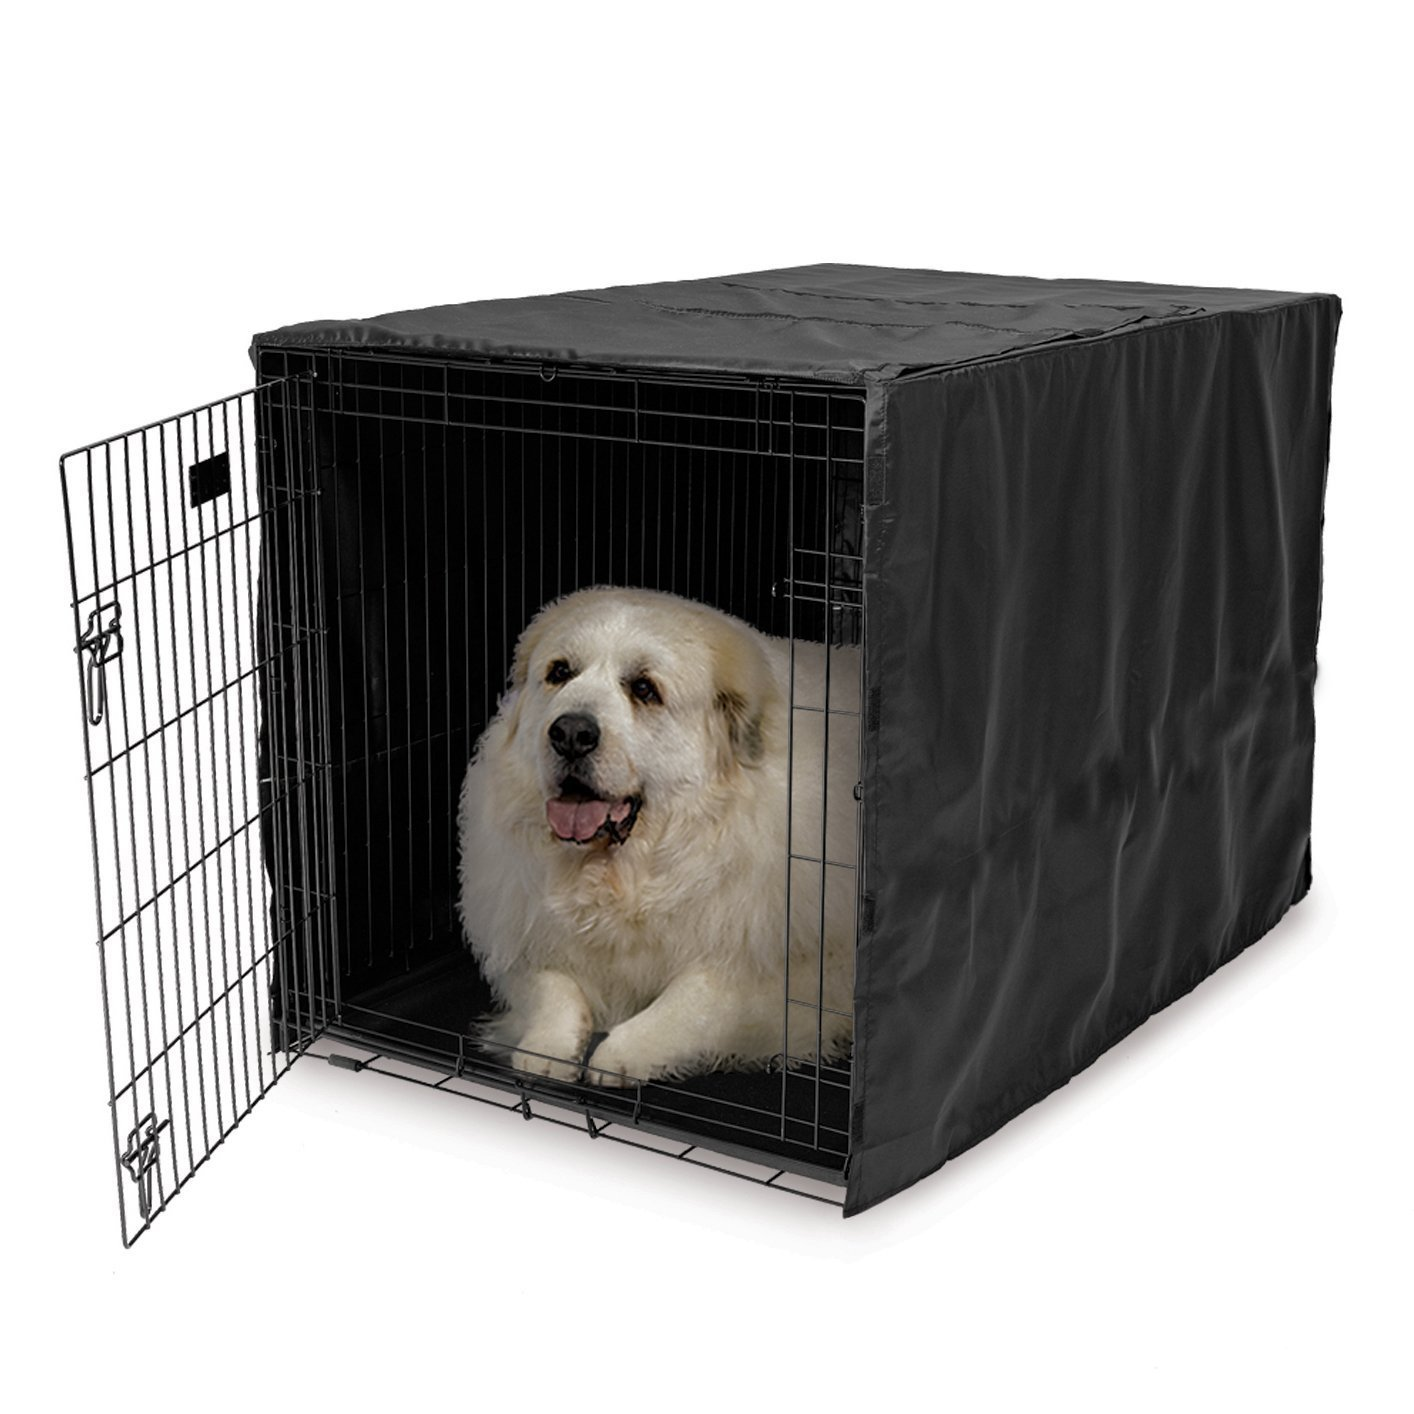 Spring Fever Multi Sizes Pet Kennel Covers Dustproof Windbreak for Dog Crates Black M(23.616.919.6inch)